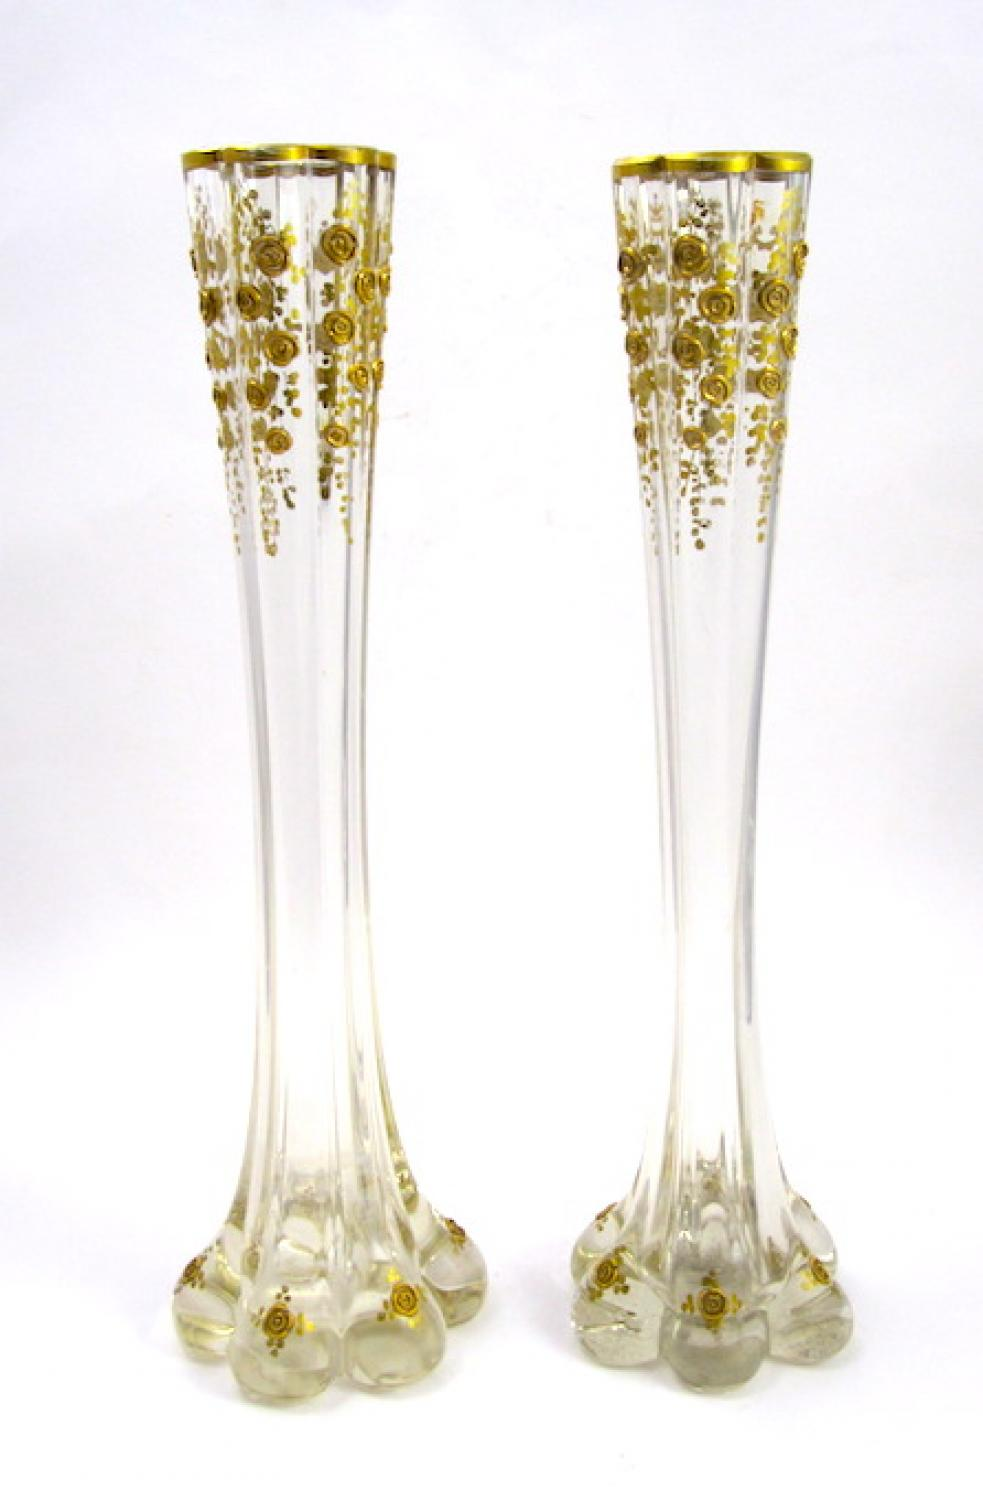 A Tall Pair of Unusual St Louis Vases